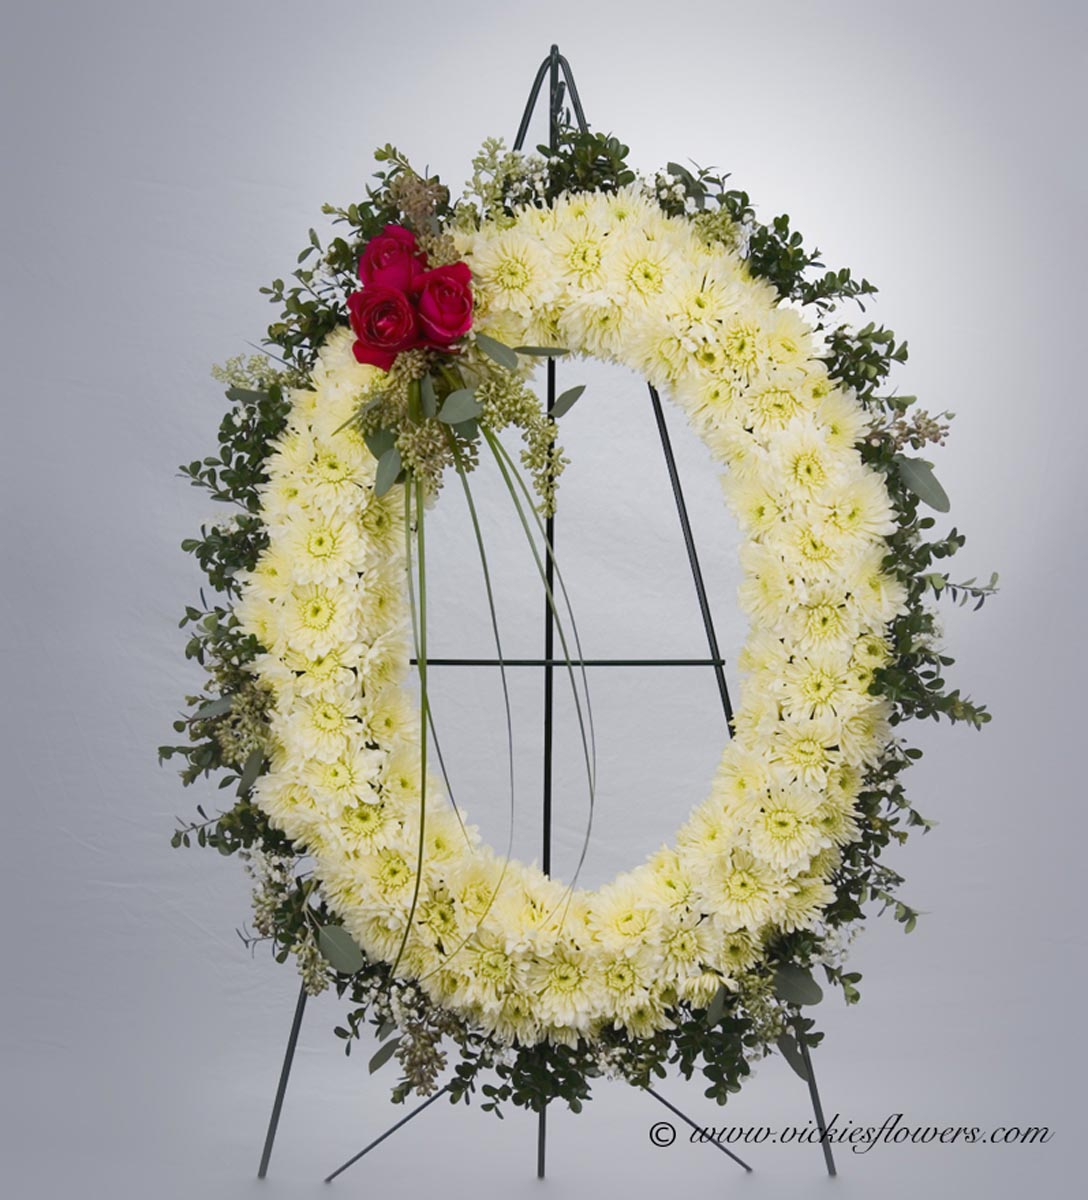 Funeral crosses standing sprays vickies flowers brighton co standing funeral spray 024 225 plus tax and delivery beautiful and class large oval standing spray made with white mums red roses hypericum izmirmasajfo